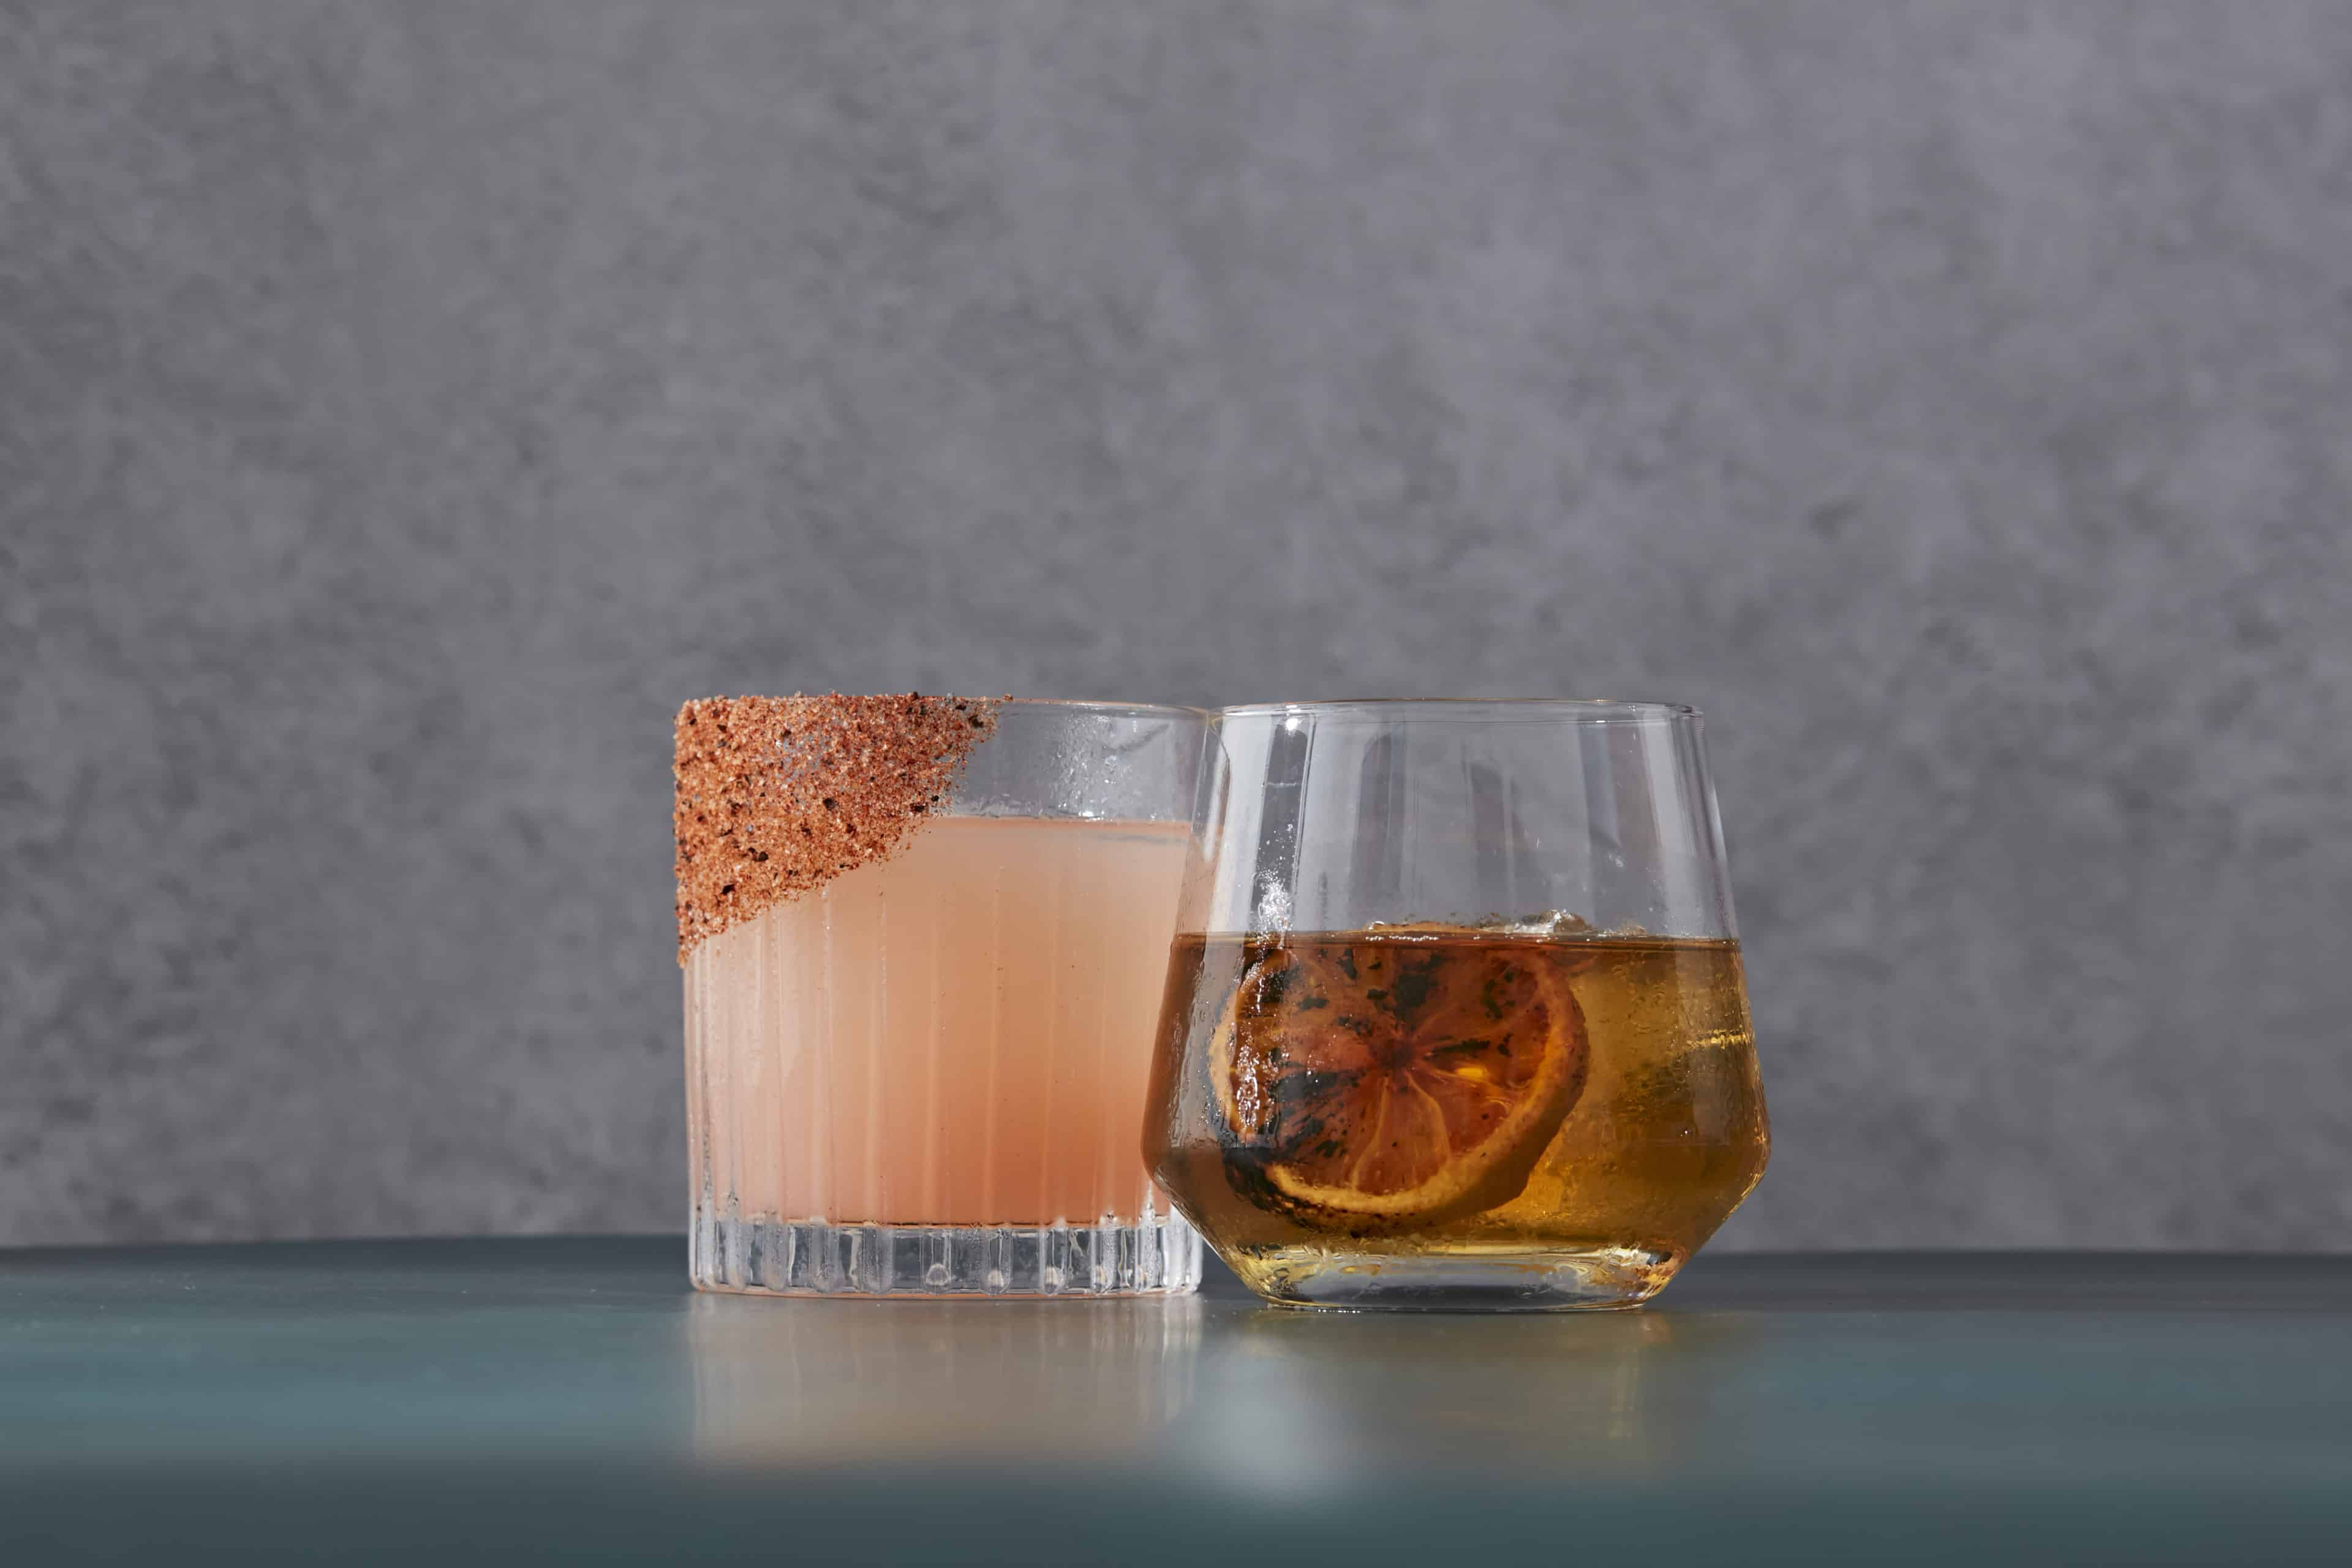 Specialty Cocktails - Old Fashioned, Paloma Margarita